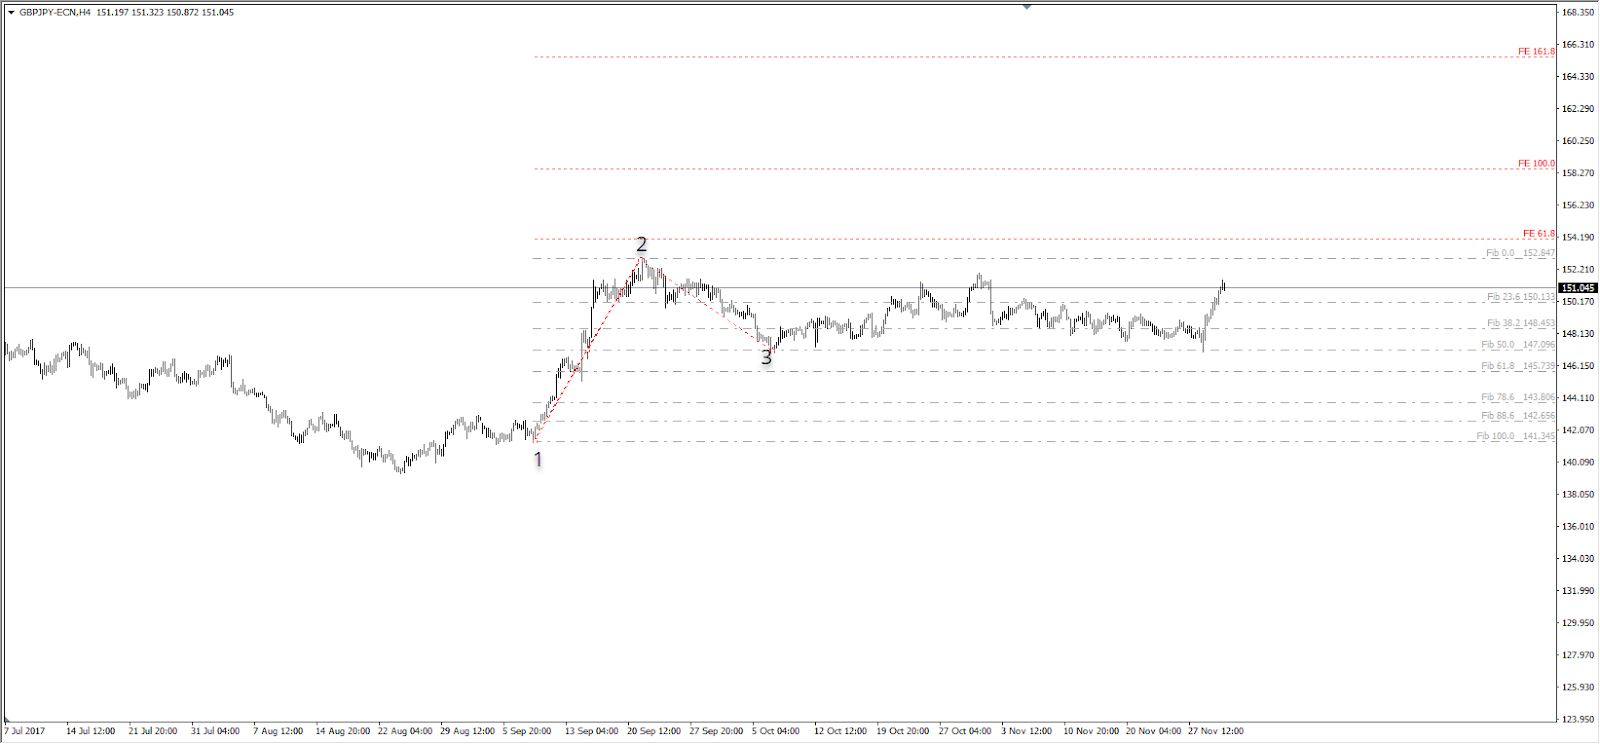 MT4 support and resistance